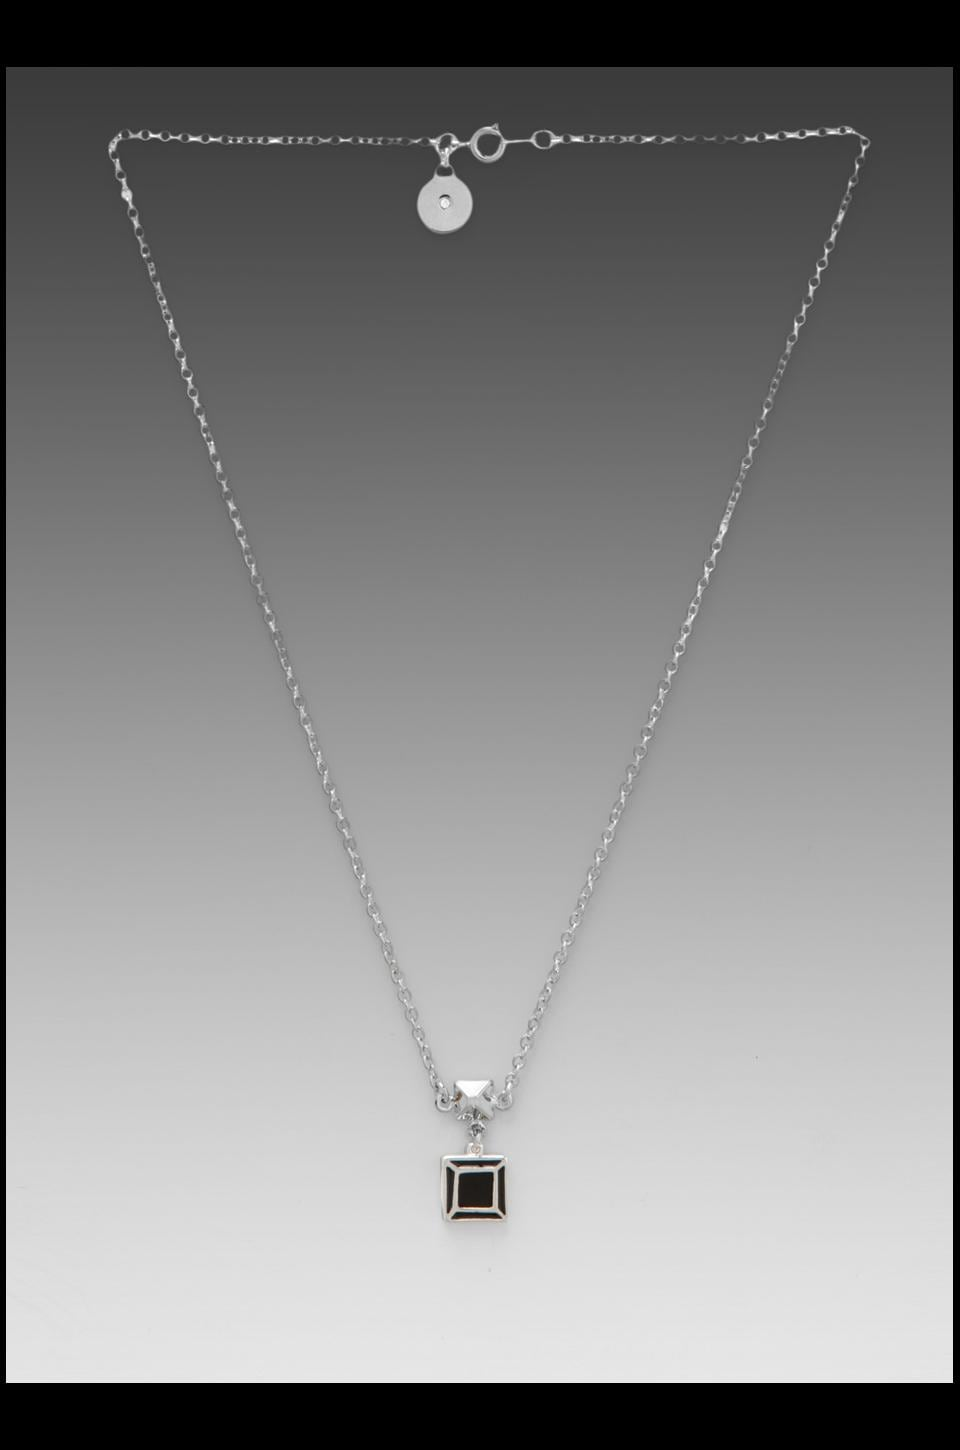 Marc by Marc Jacobs Gem Slices Pyramid Necklace in Black/ Argento